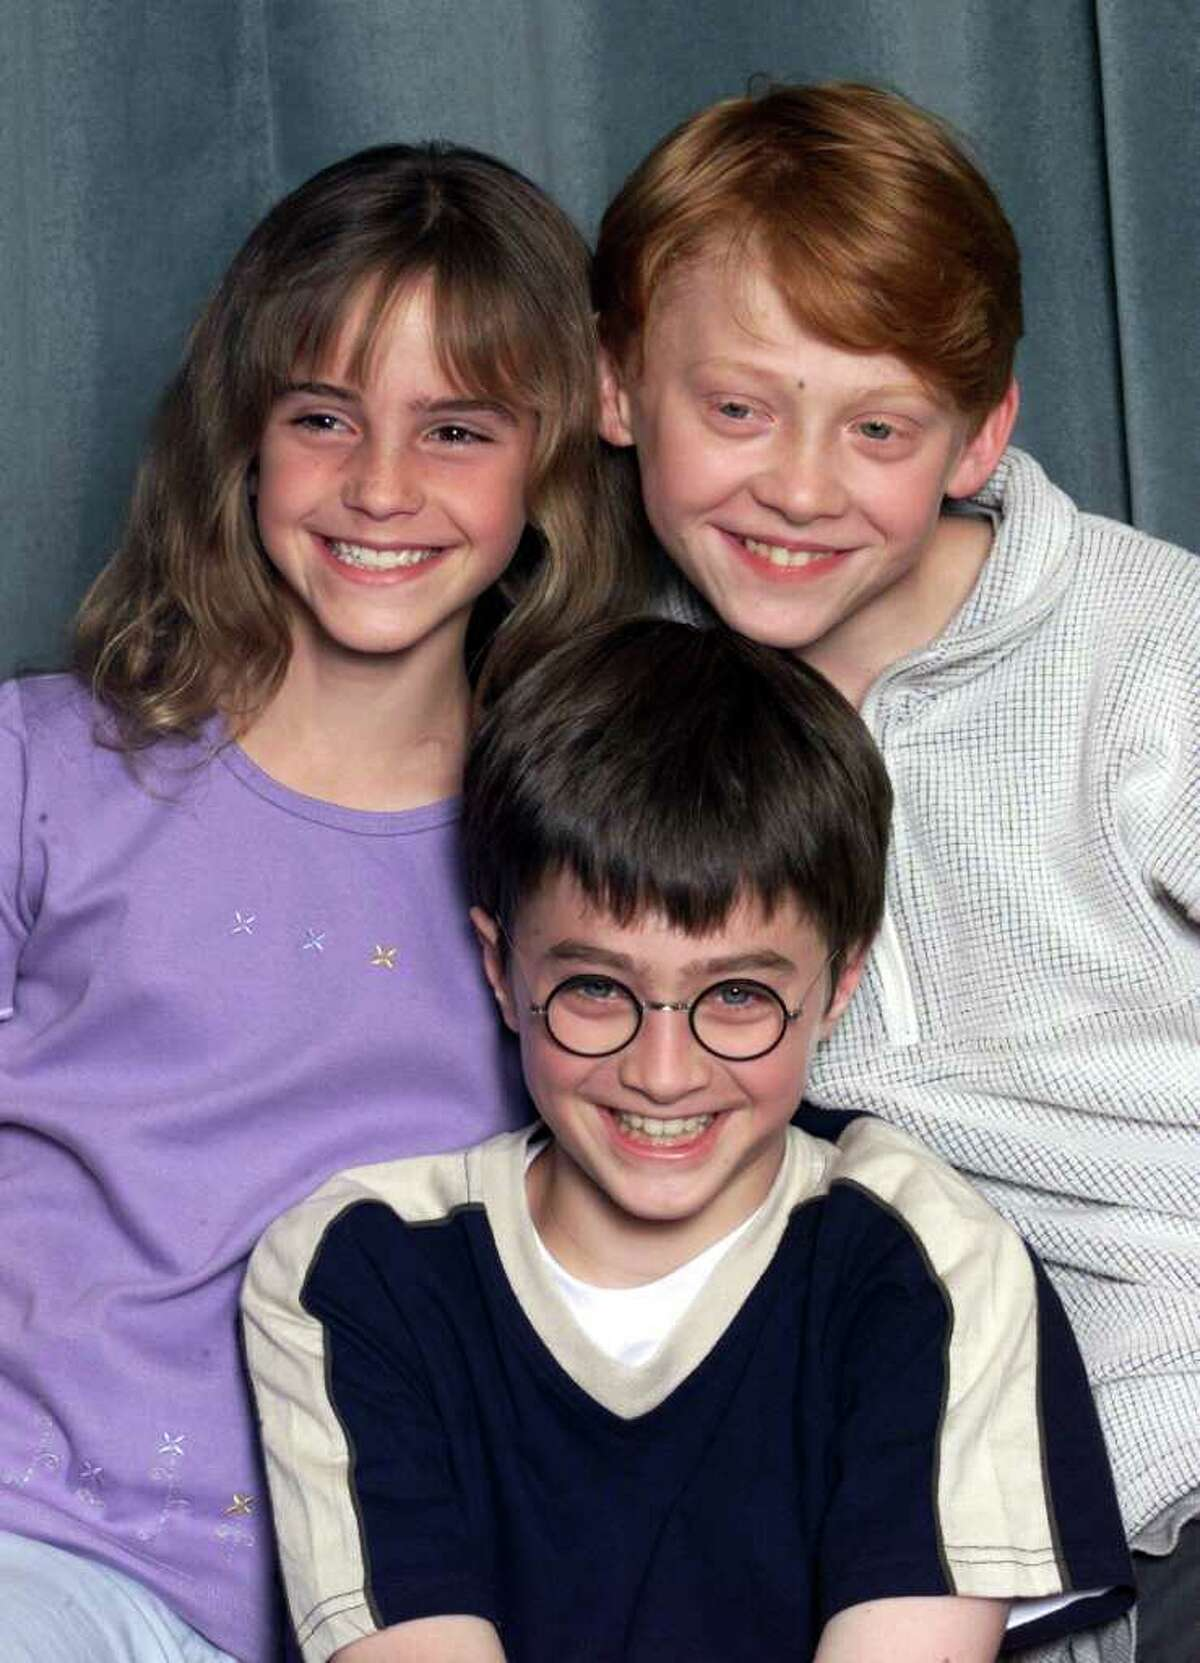 """During a decade of filming, the stars of Harry Potter have gone from precocious pre-teens to sexy stars. The final film premieres in the U.S. July 15. Here, actors Emma Watson (L), Daniel Radcliffe (C) and Rupert Grint (R) attend a press conference for the movie """"Harry Potter and The Philosopher's Stone"""" in London on August 23, 2000."""